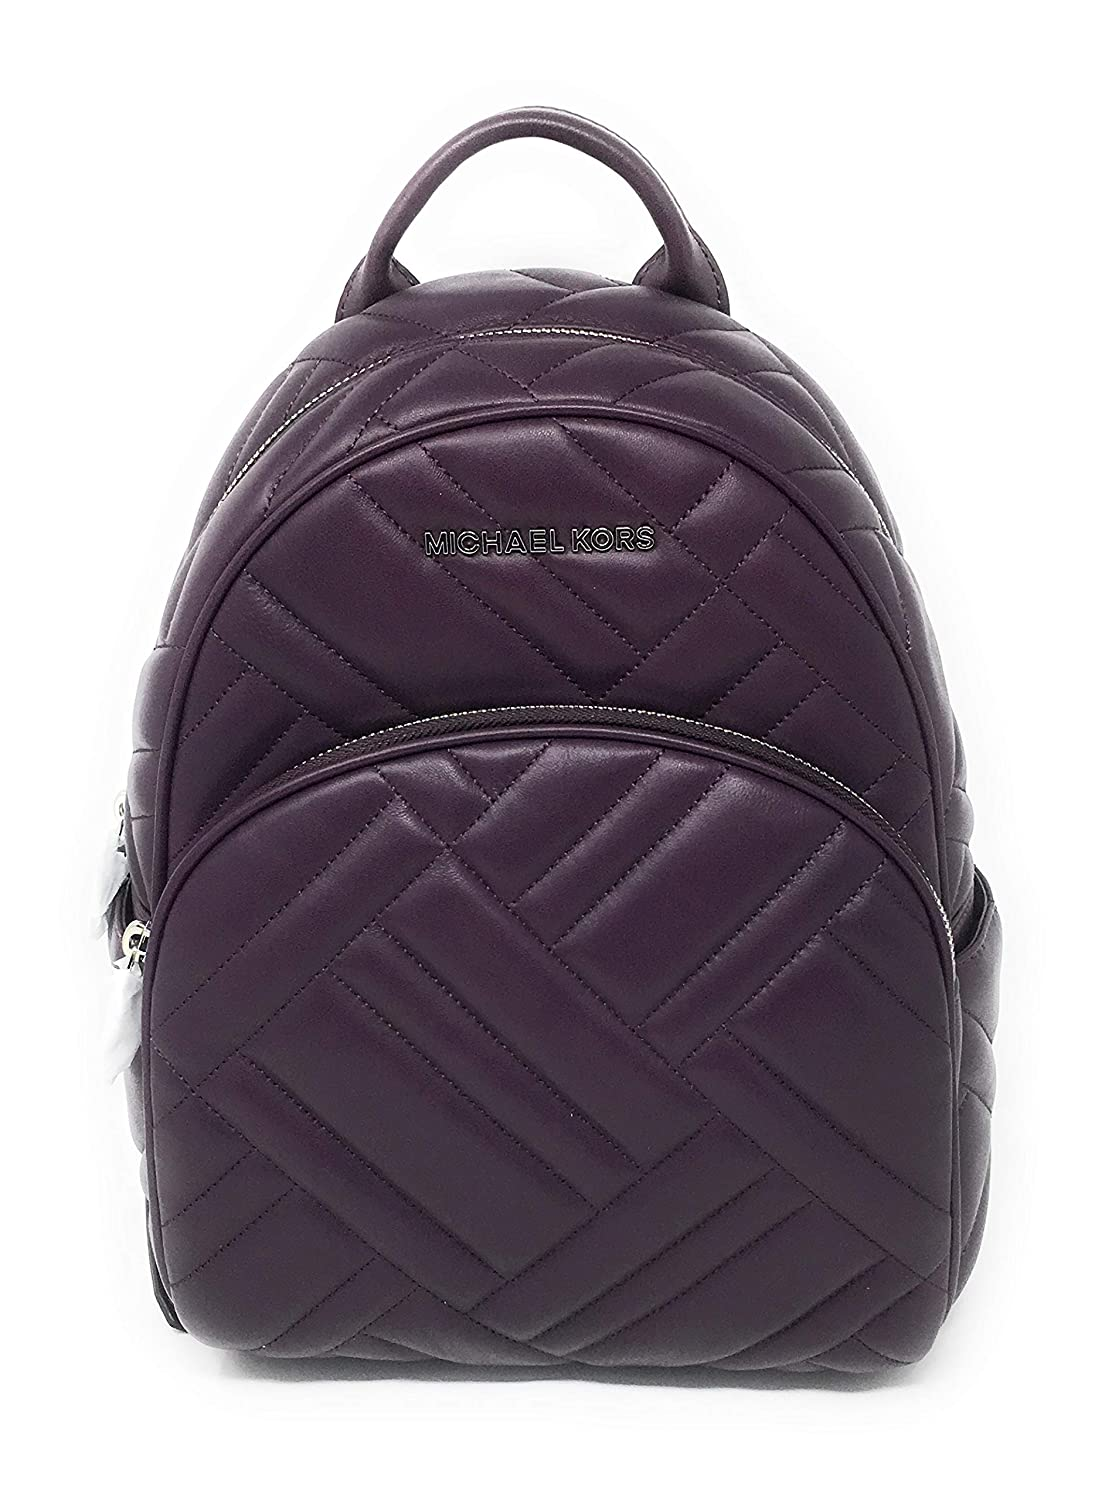 a40ff230f274 Amazon.com: Michael Kors Abbey Medium Chevron Quilted Leather Backpack  Damson: Shoes